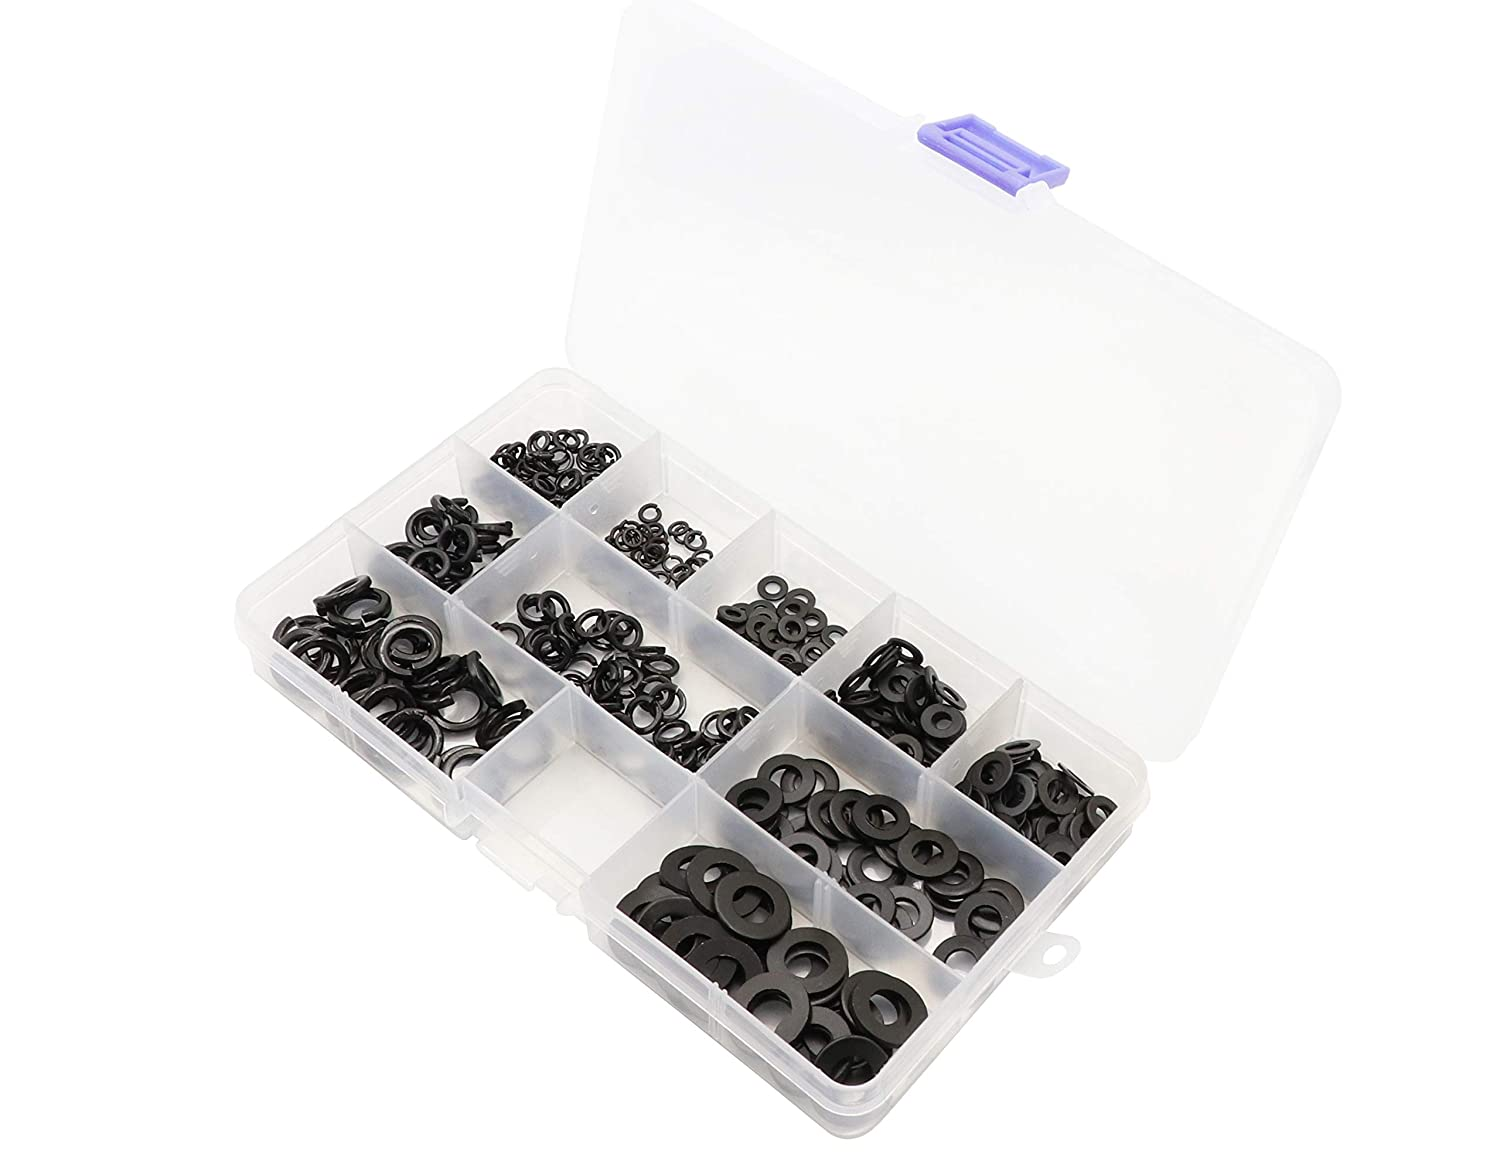 LBY 400pcs Spring Lock Washer and Flat M8 M4 Fl M5 Direct store M6 M3 Max 80% OFF